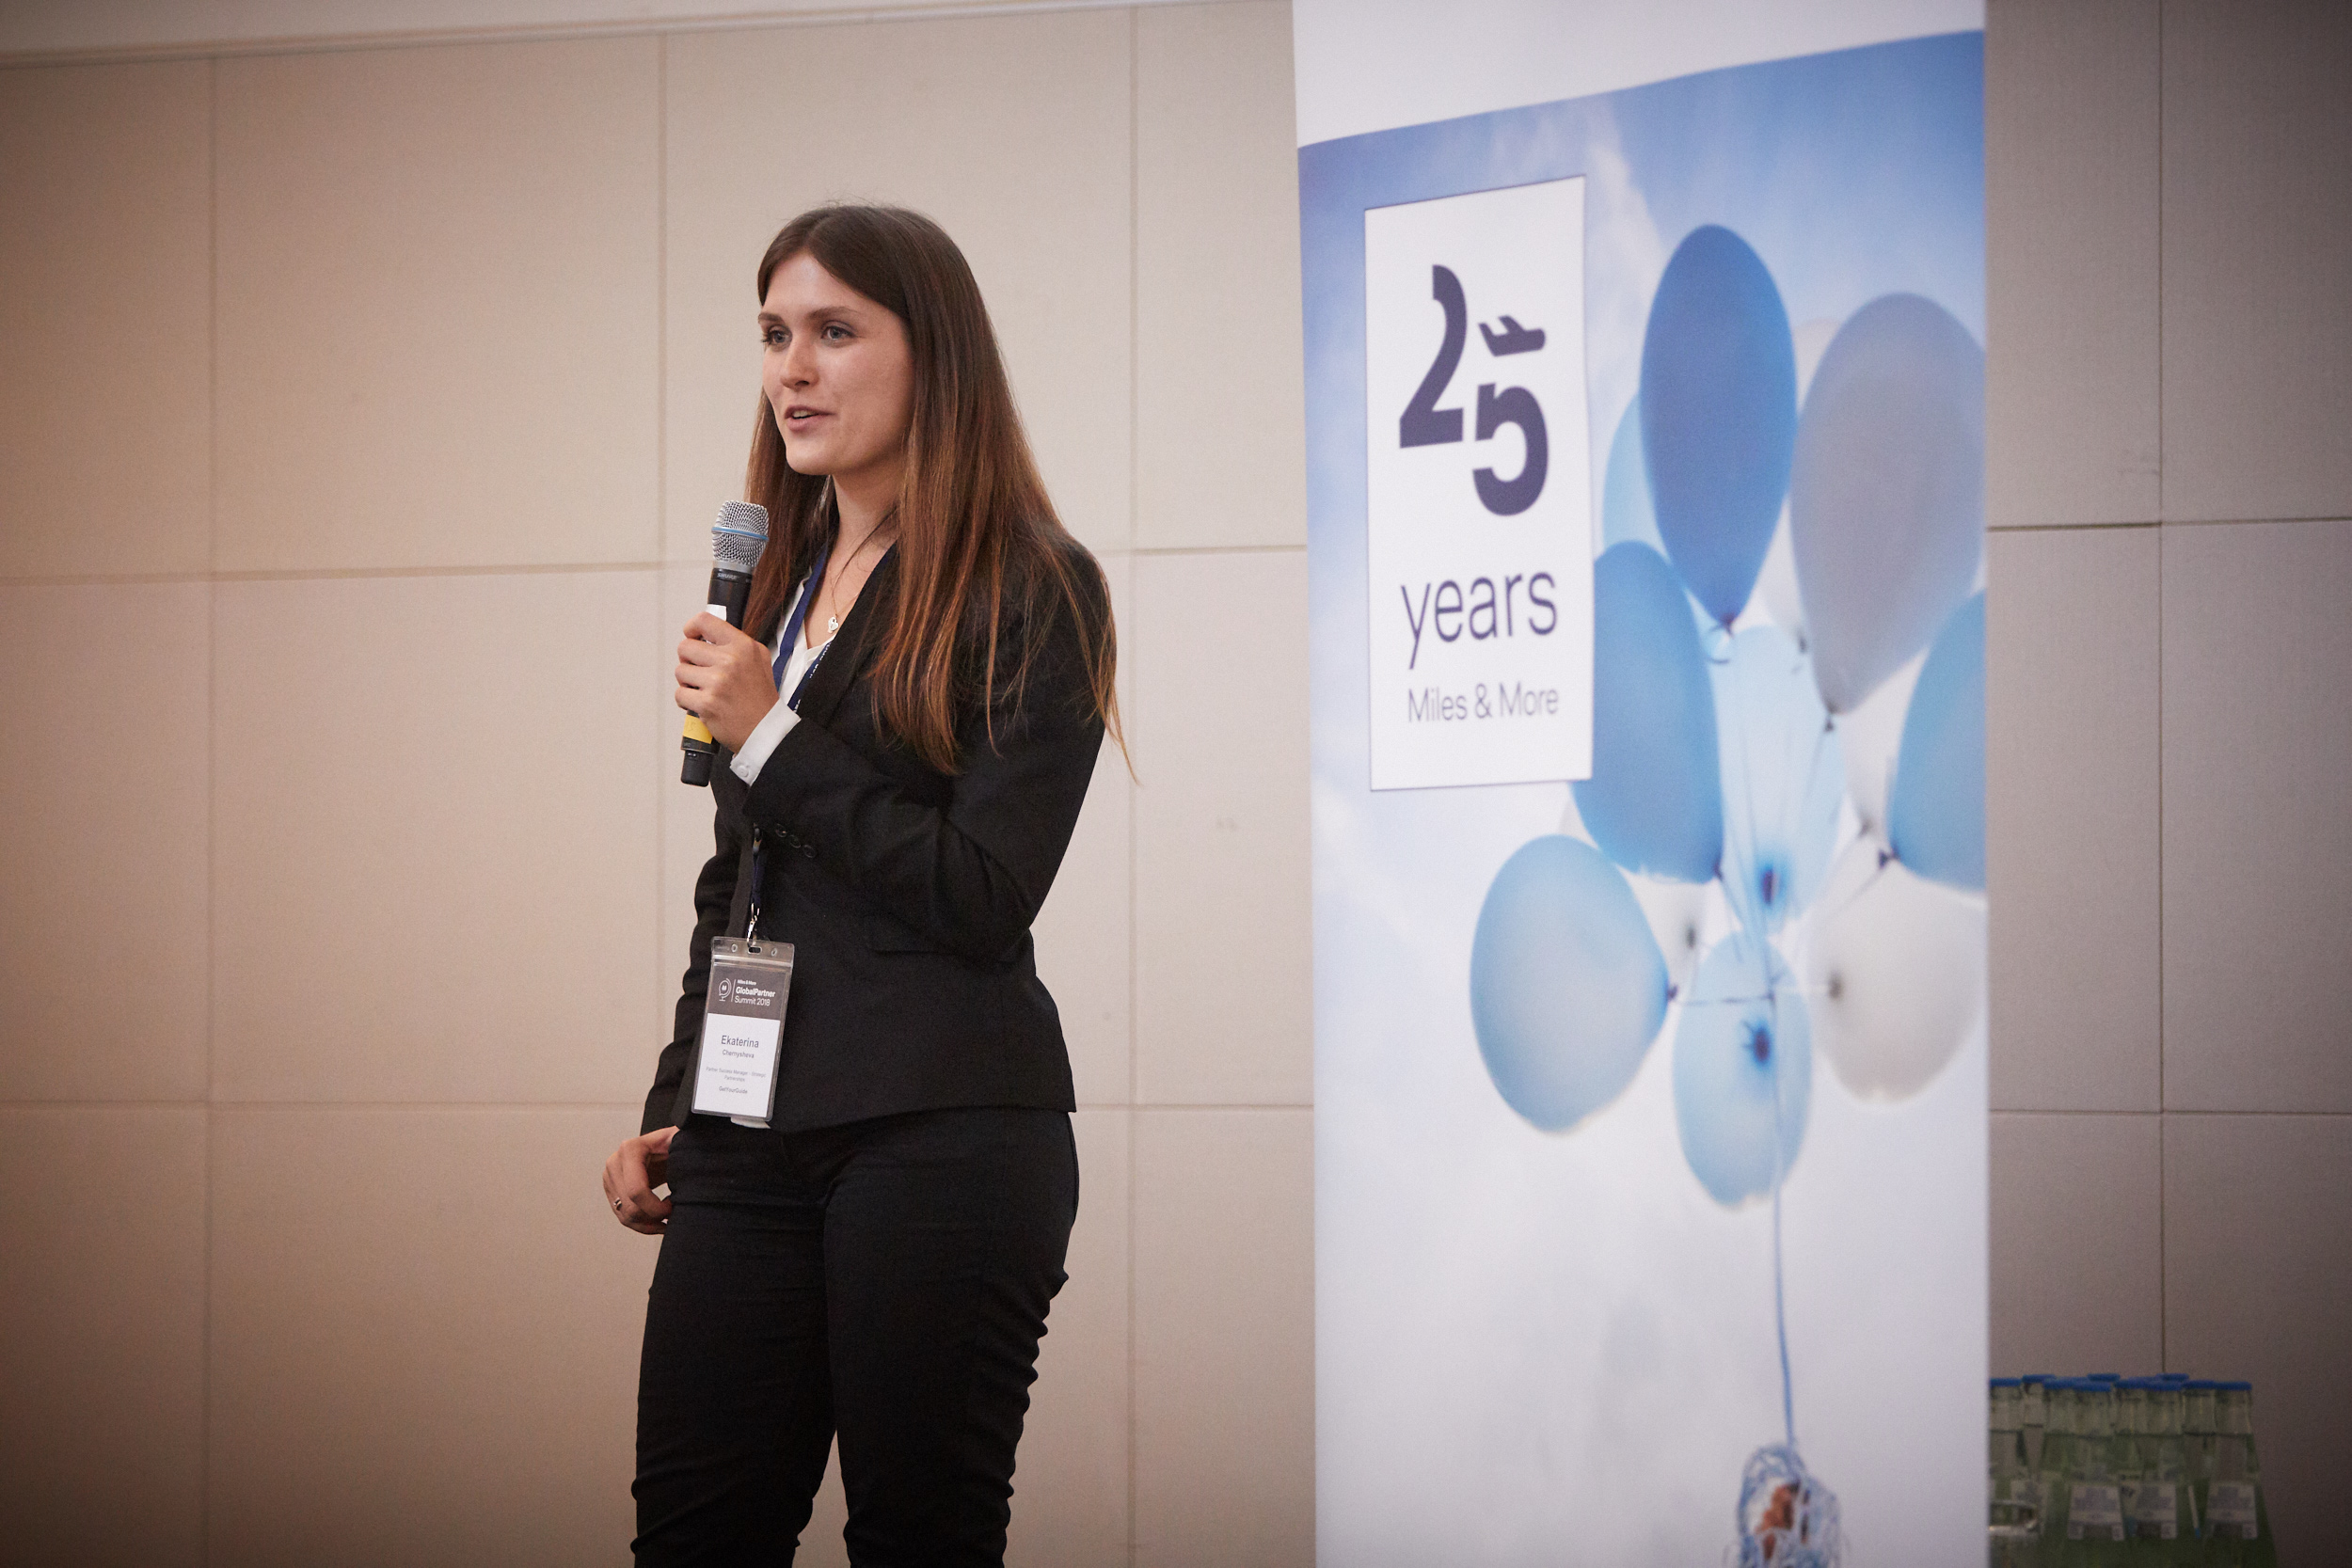 Ekaterina at the Miles and More Summit